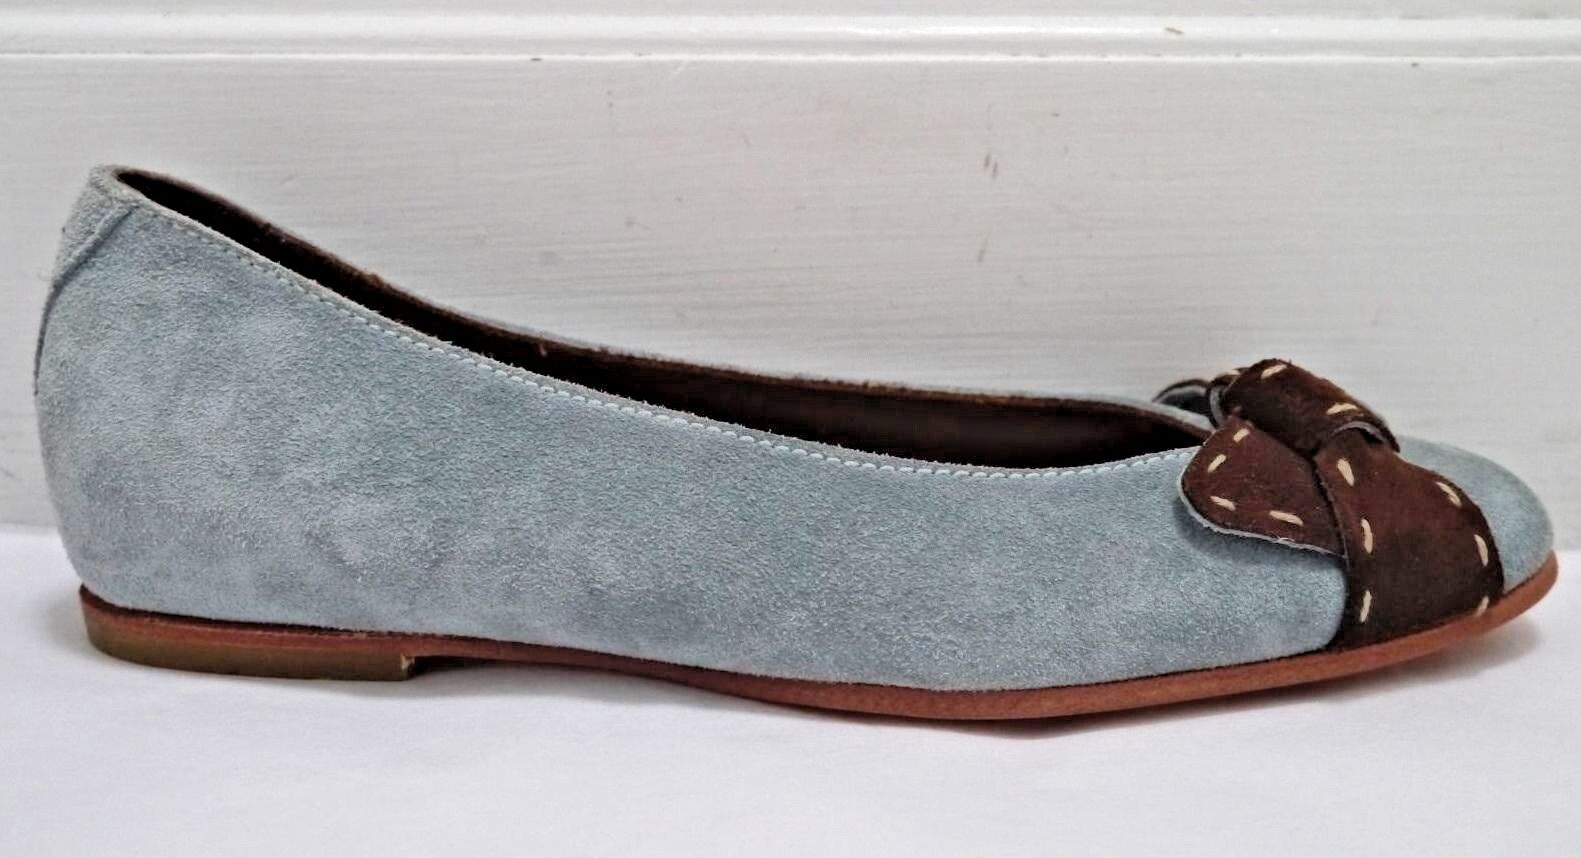 NEW HENRY BEGUELIN light bluee bluee bluee and brown suede ballet flats shoes Italian size 36 daa3ba